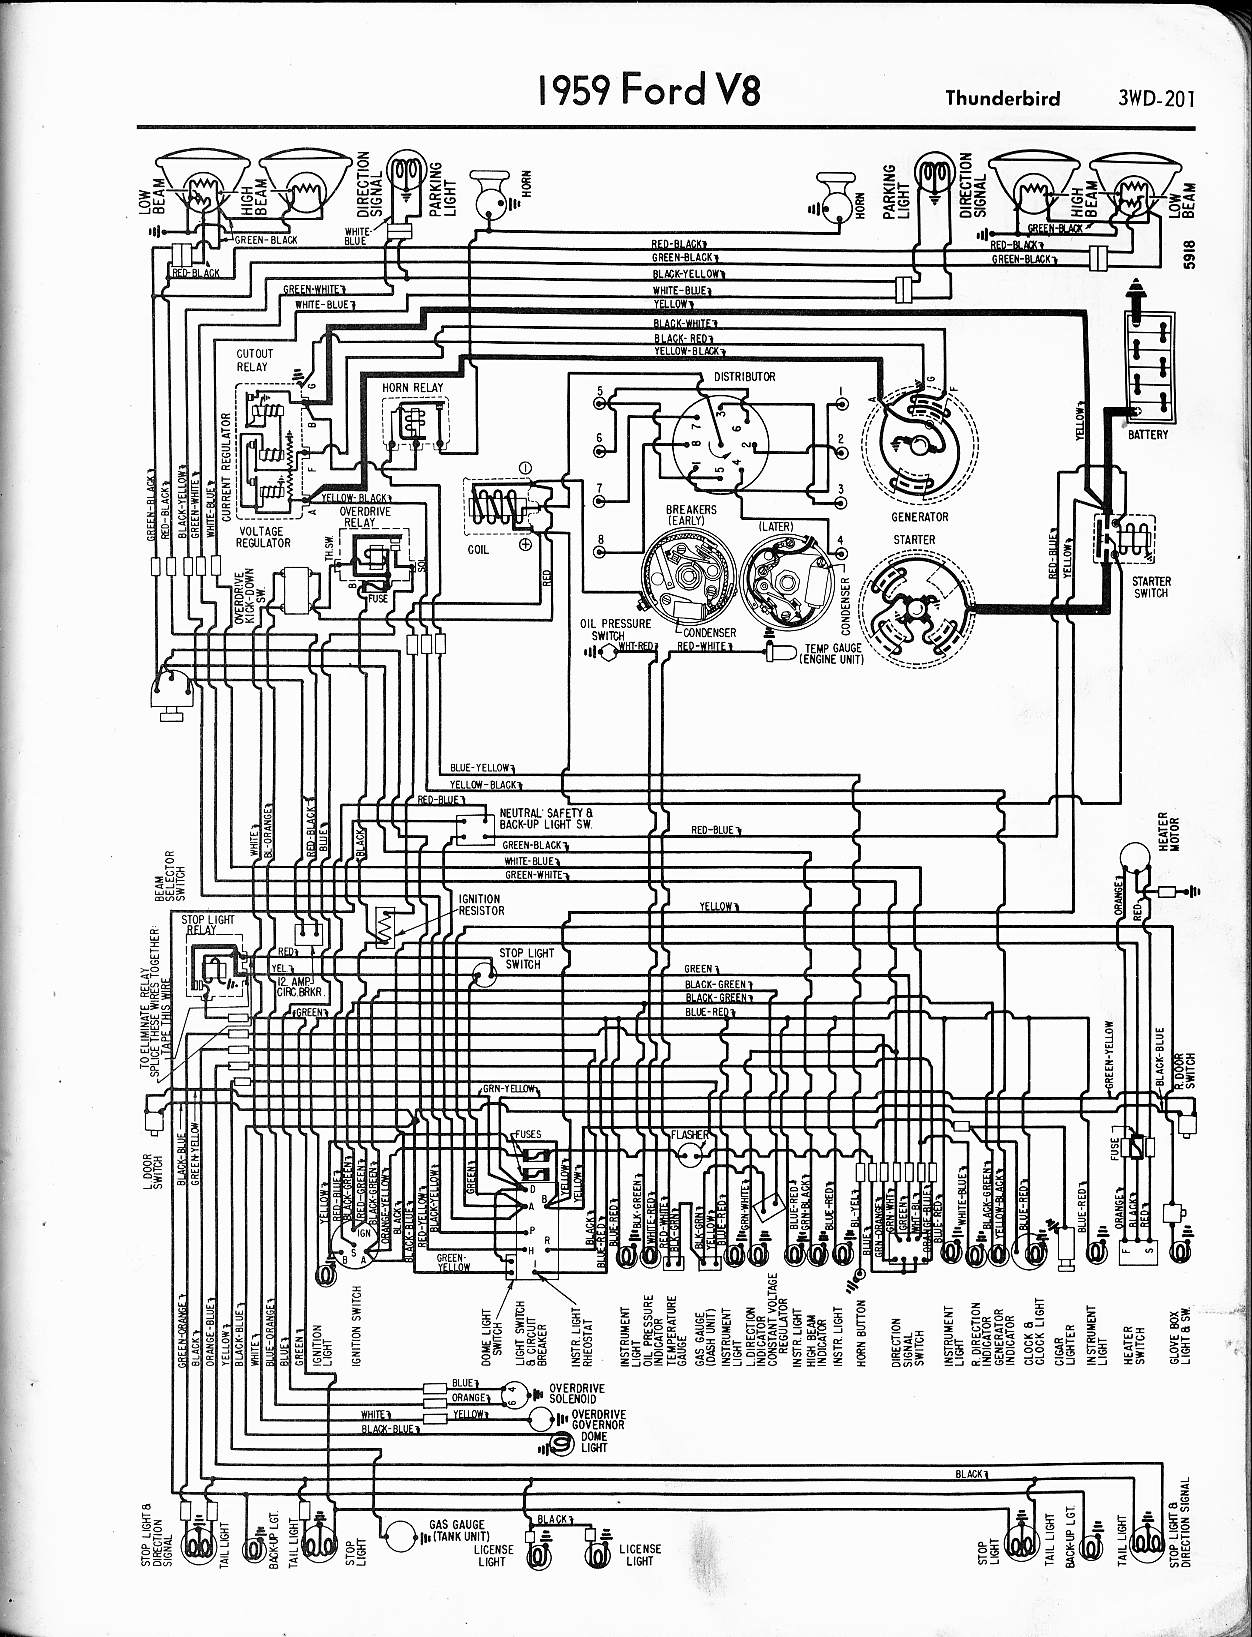 MWire5765 201 57 65 ford wiring diagrams 1960 ford f100 wiring diagram at bayanpartner.co